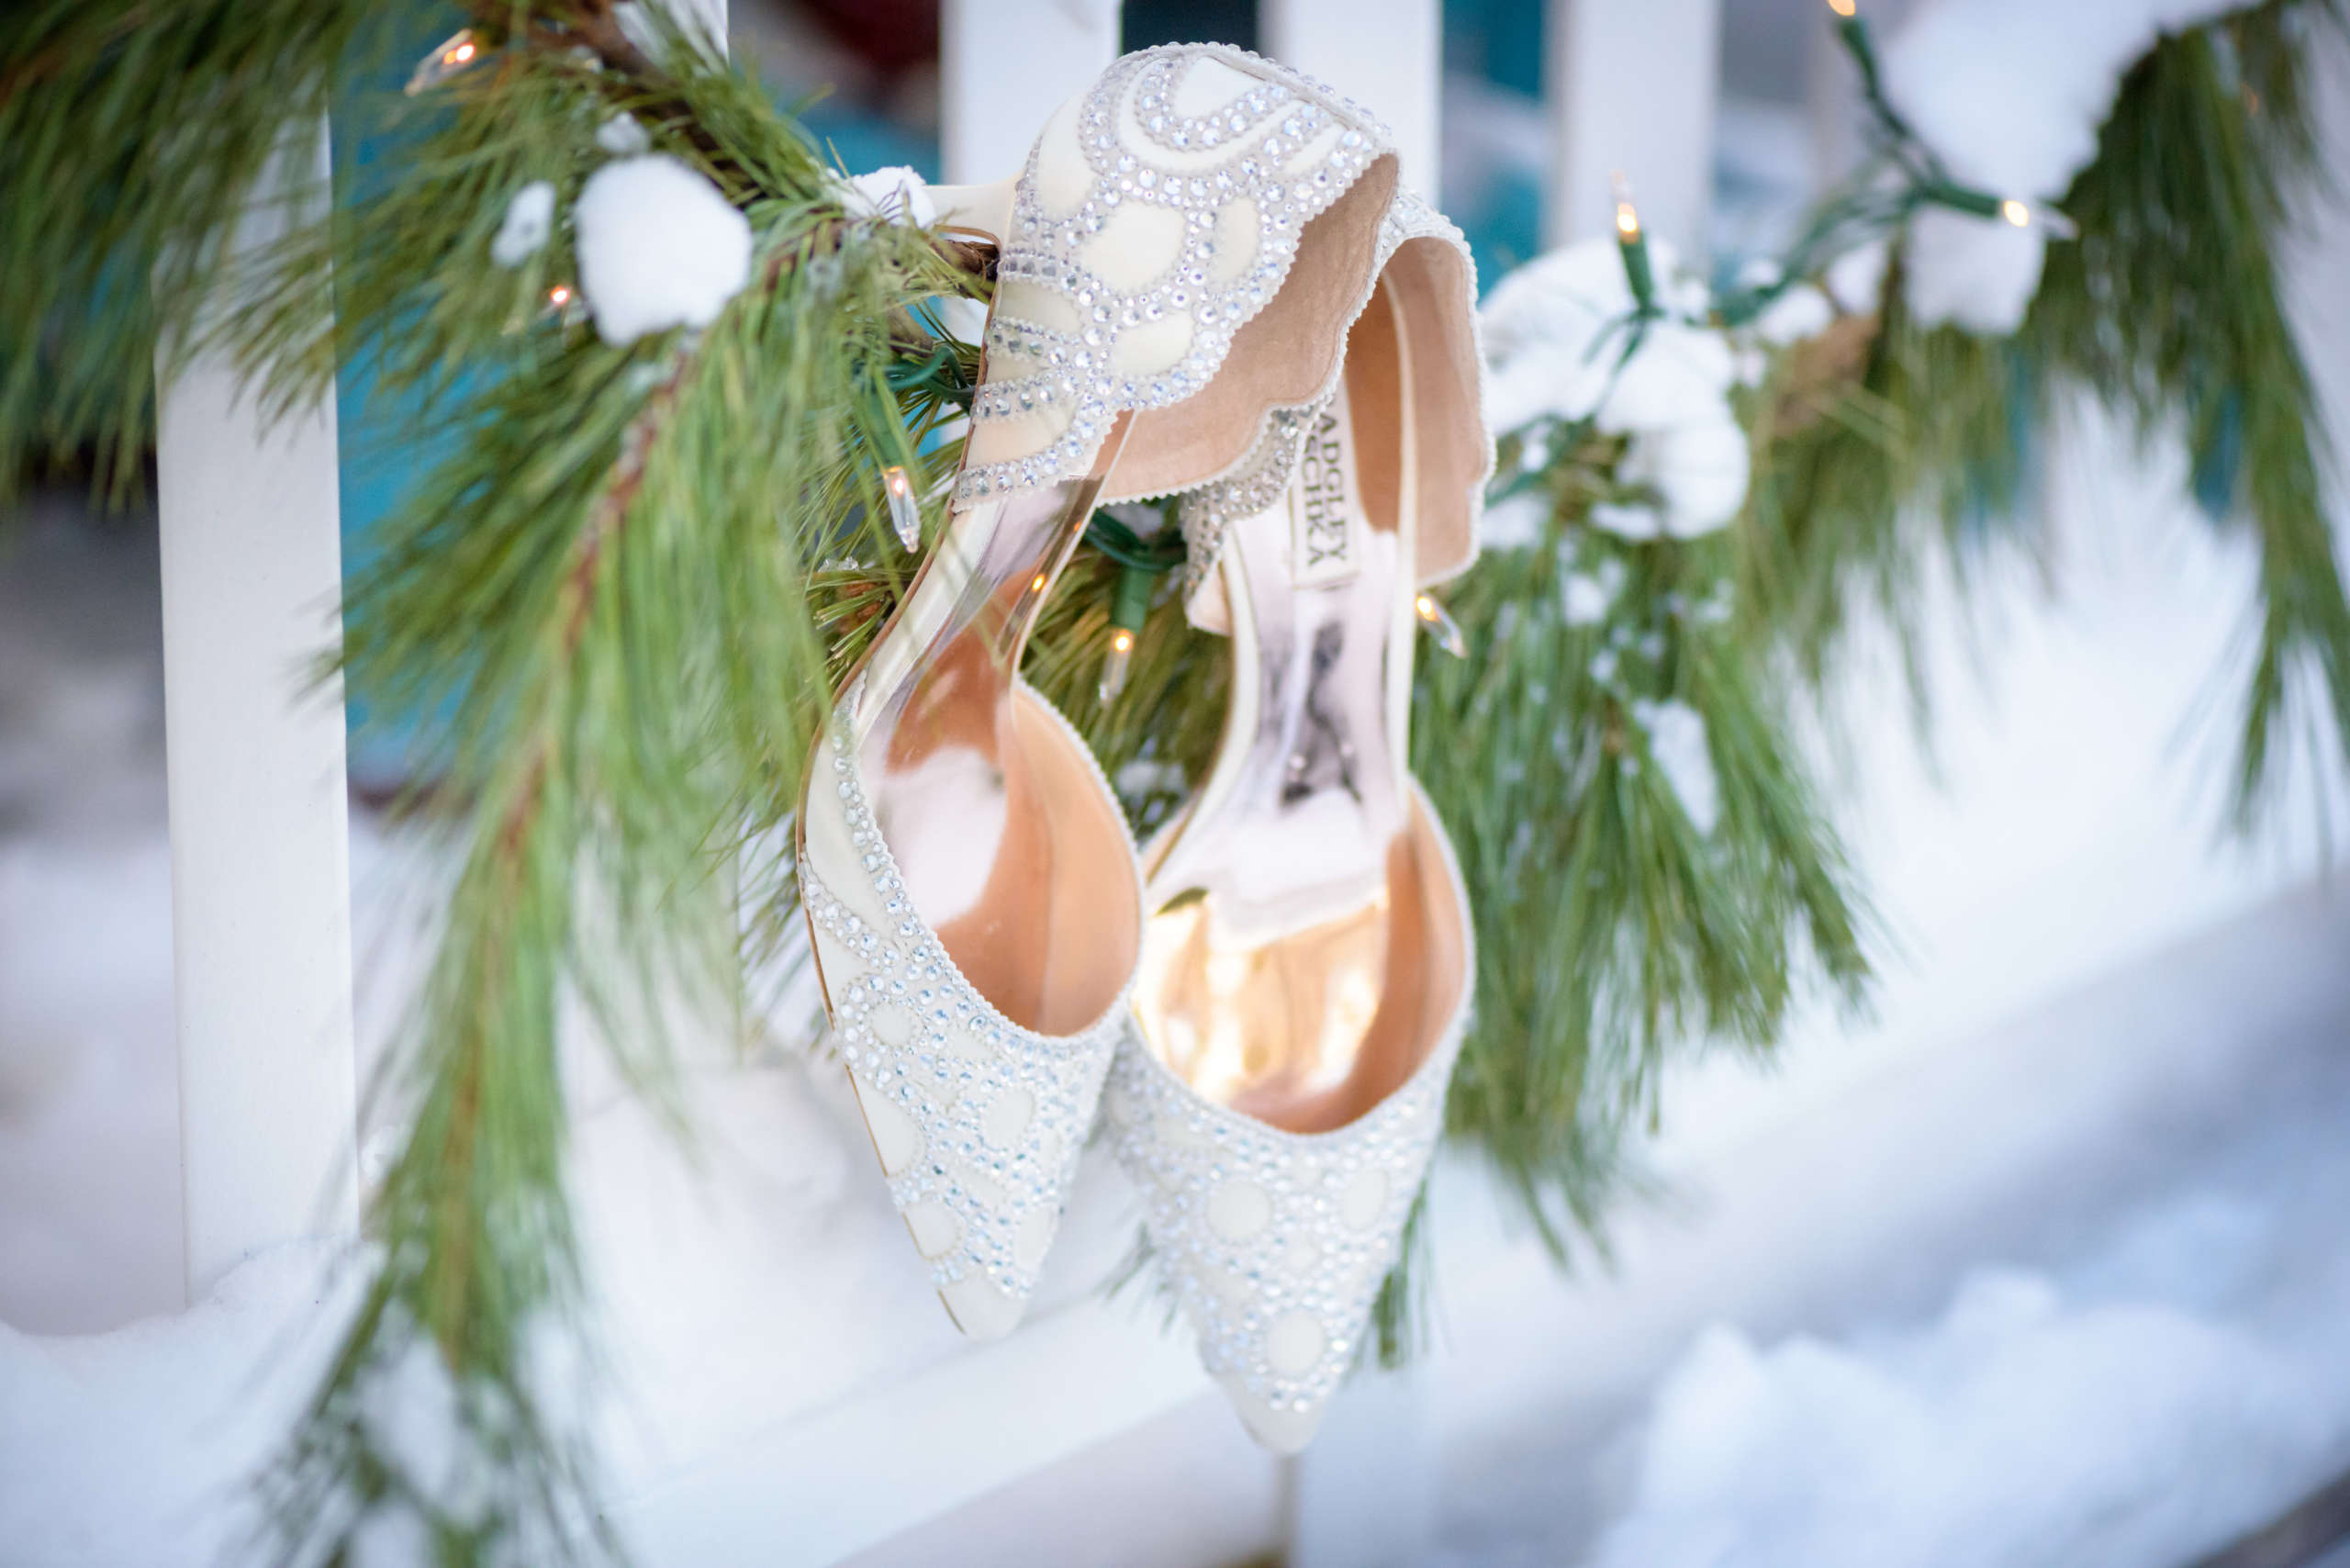 Close up photo of bride's wedding shoes hanging on garland in winter